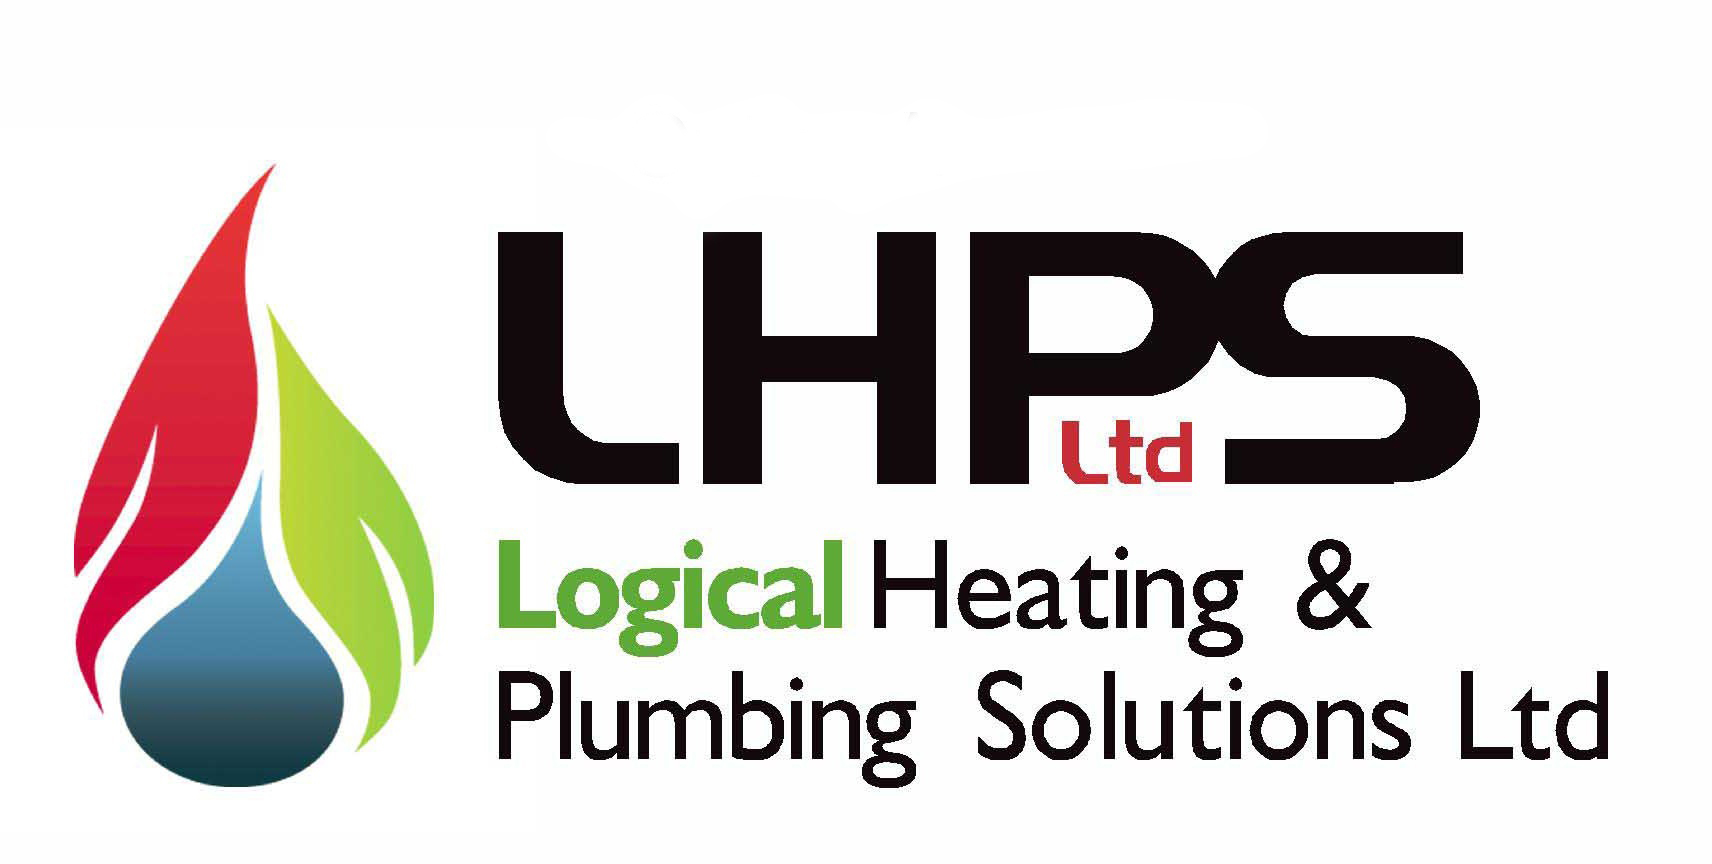 Read Logical Heating & Plumbing Solutions Ltd Reviews